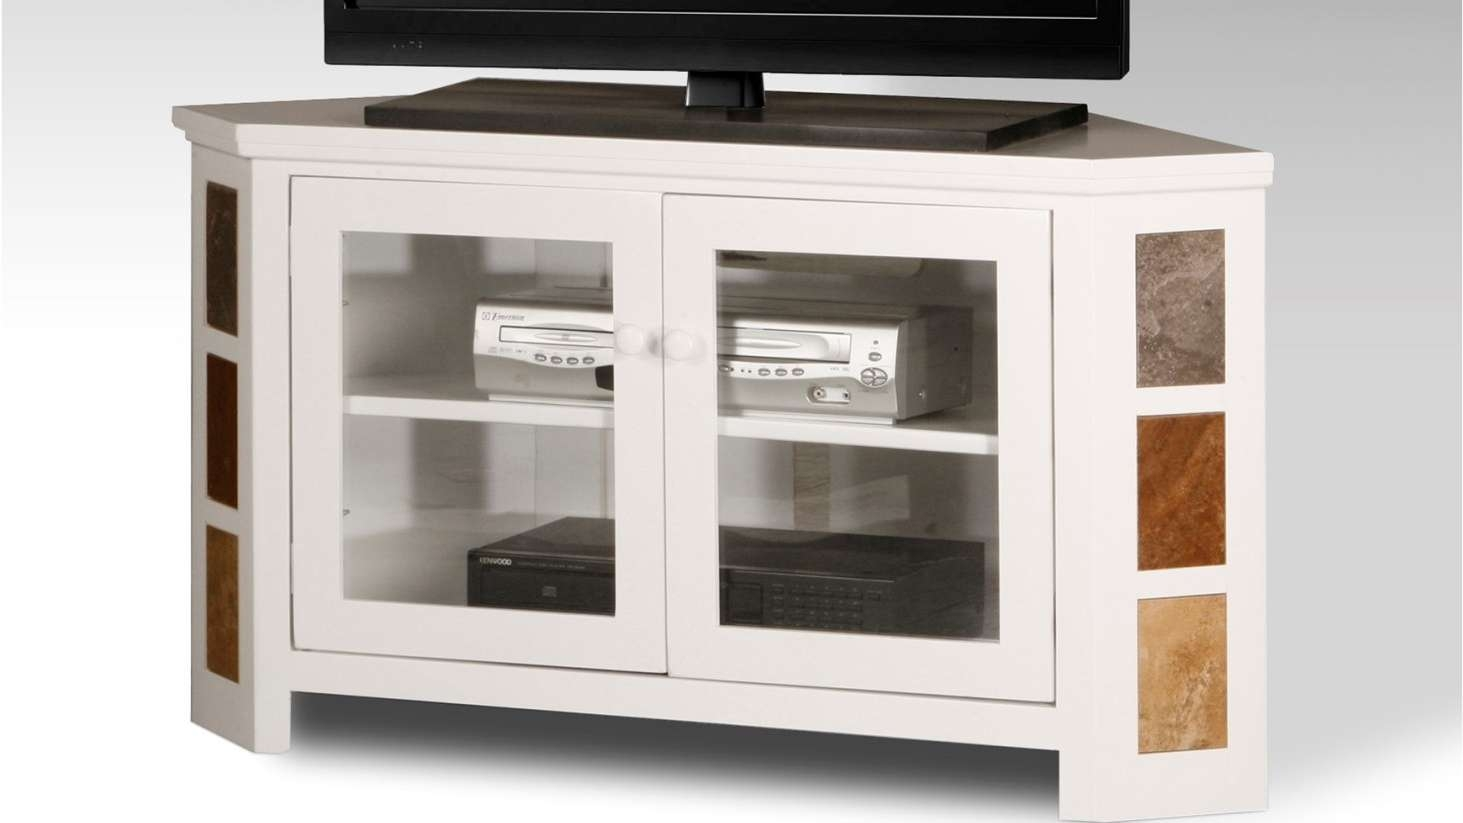 Tv : Amazing Oval White Tv Stands Techlink Ovid White Gloss Oval Pertaining To Ovid White Tv Stands (View 11 of 15)